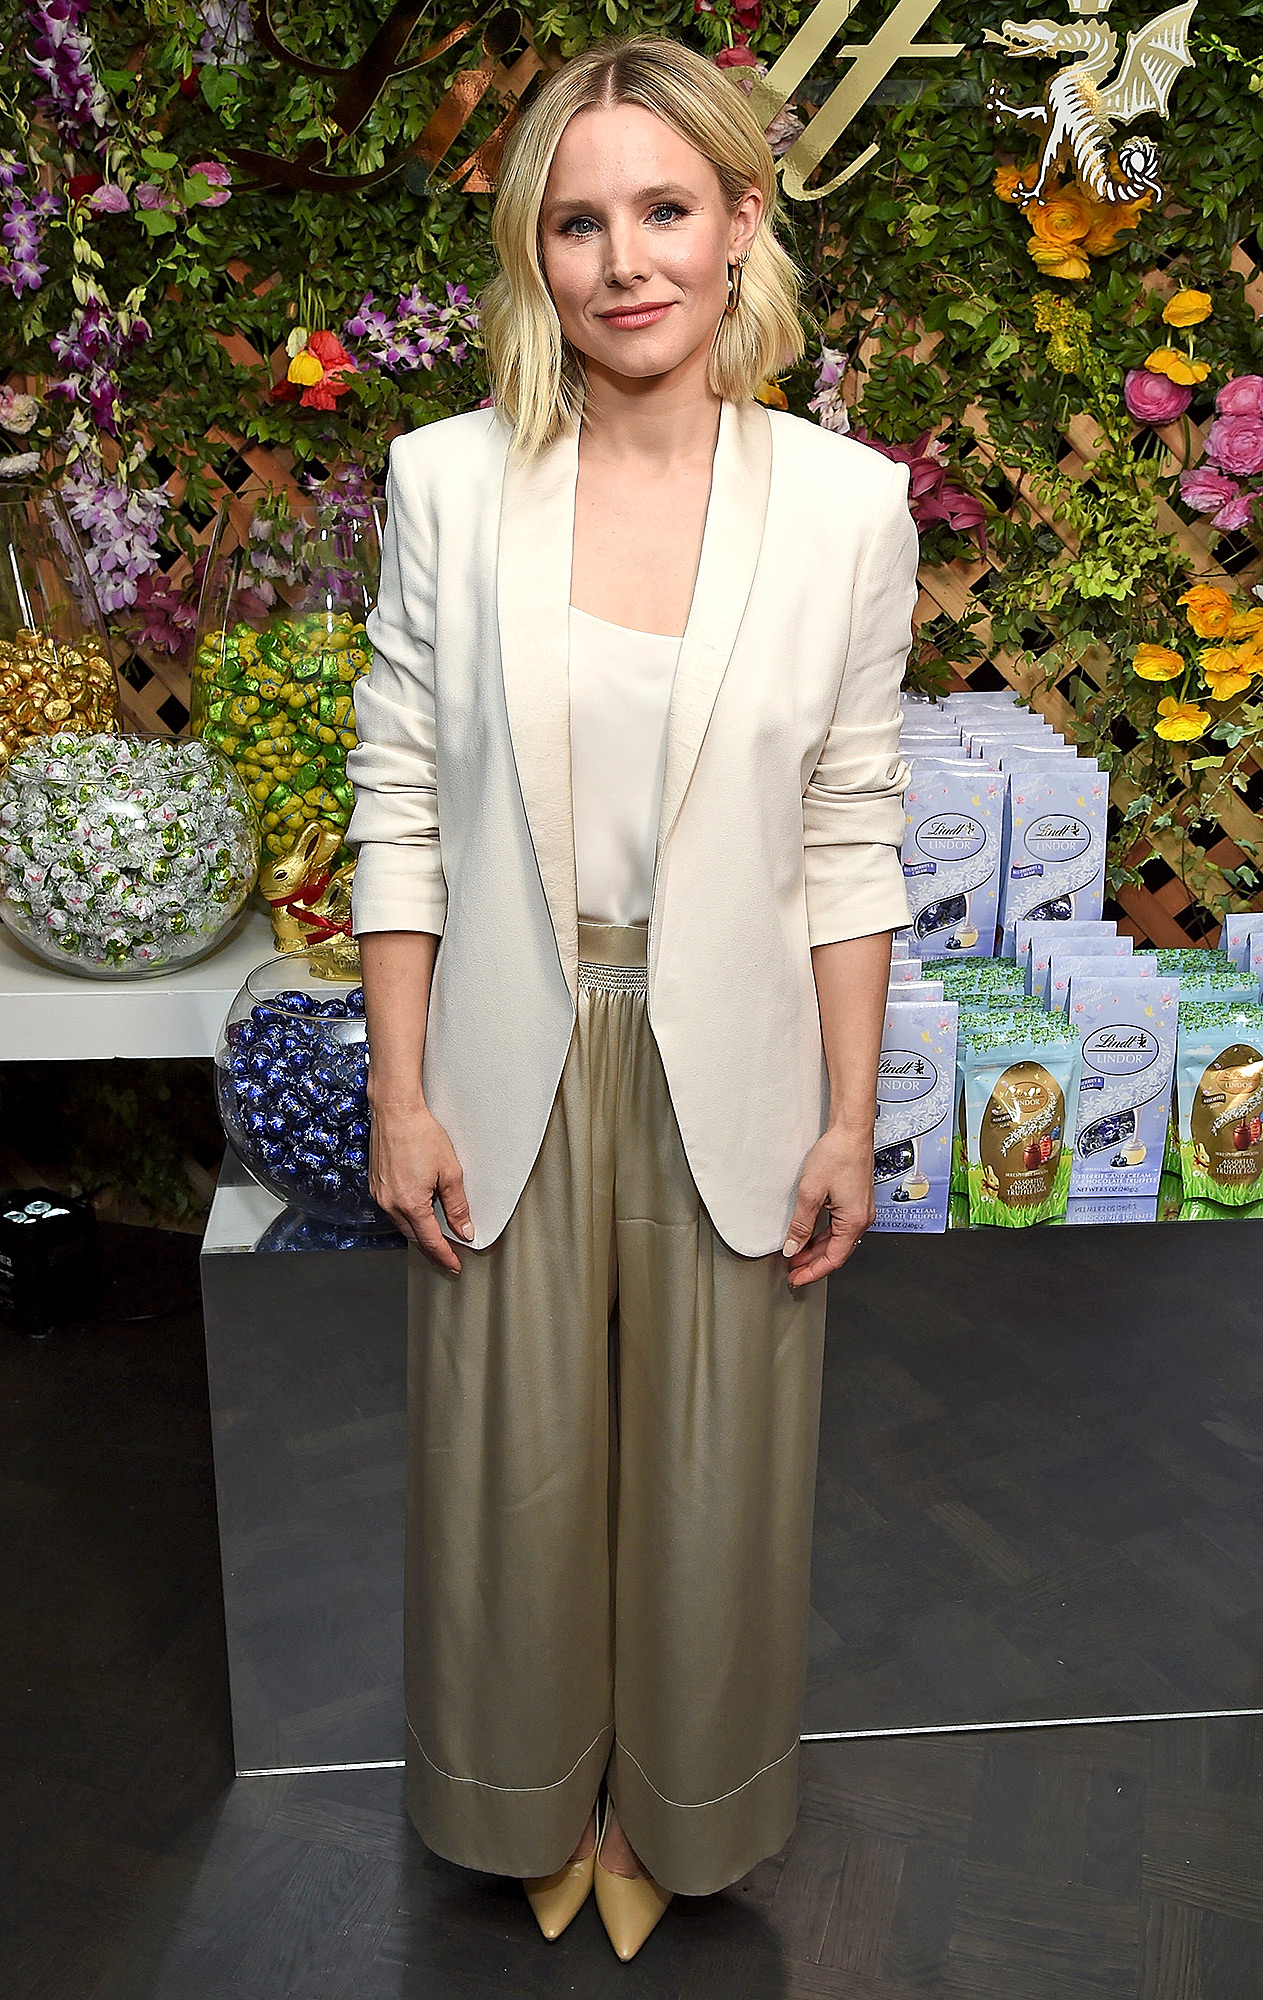 Lindt Chocolate Easter lunch with Kristen Bell and friends